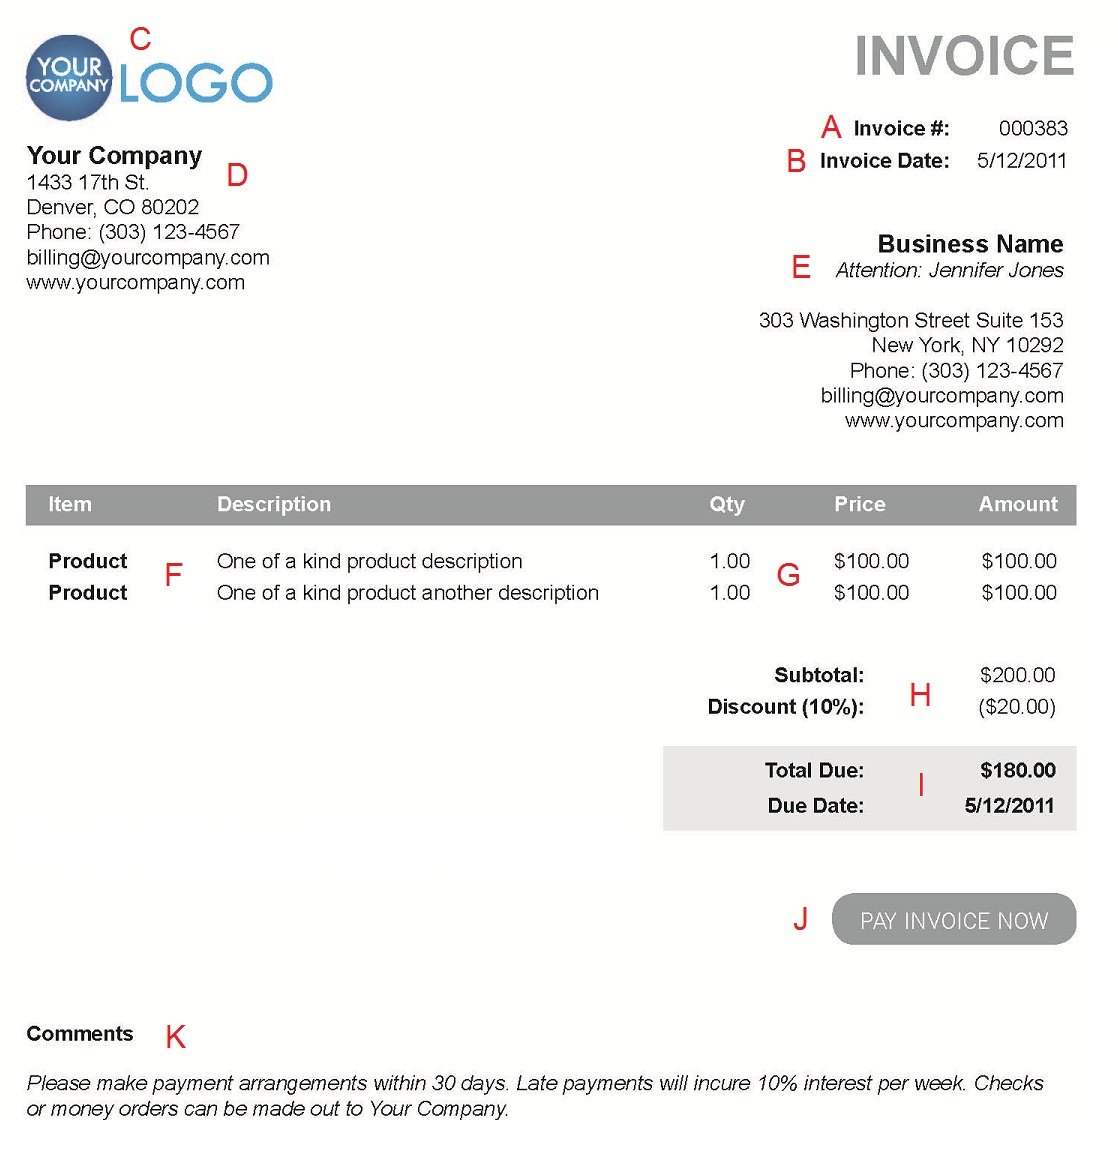 Centralasianshepherdus  Surprising The  Different Sections Of An Electronic Payment Invoice With Heavenly A  With Amusing Get Invoice Price On A New Car Also Tax Invoice Format In Excel Free Download In Addition Sample Of Invoice For Payment And Invoicing Software Freeware As Well As Invoice Generating Software Additionally An Invoice Template From Paysimplecom With Centralasianshepherdus  Heavenly The  Different Sections Of An Electronic Payment Invoice With Amusing A  And Surprising Get Invoice Price On A New Car Also Tax Invoice Format In Excel Free Download In Addition Sample Of Invoice For Payment From Paysimplecom